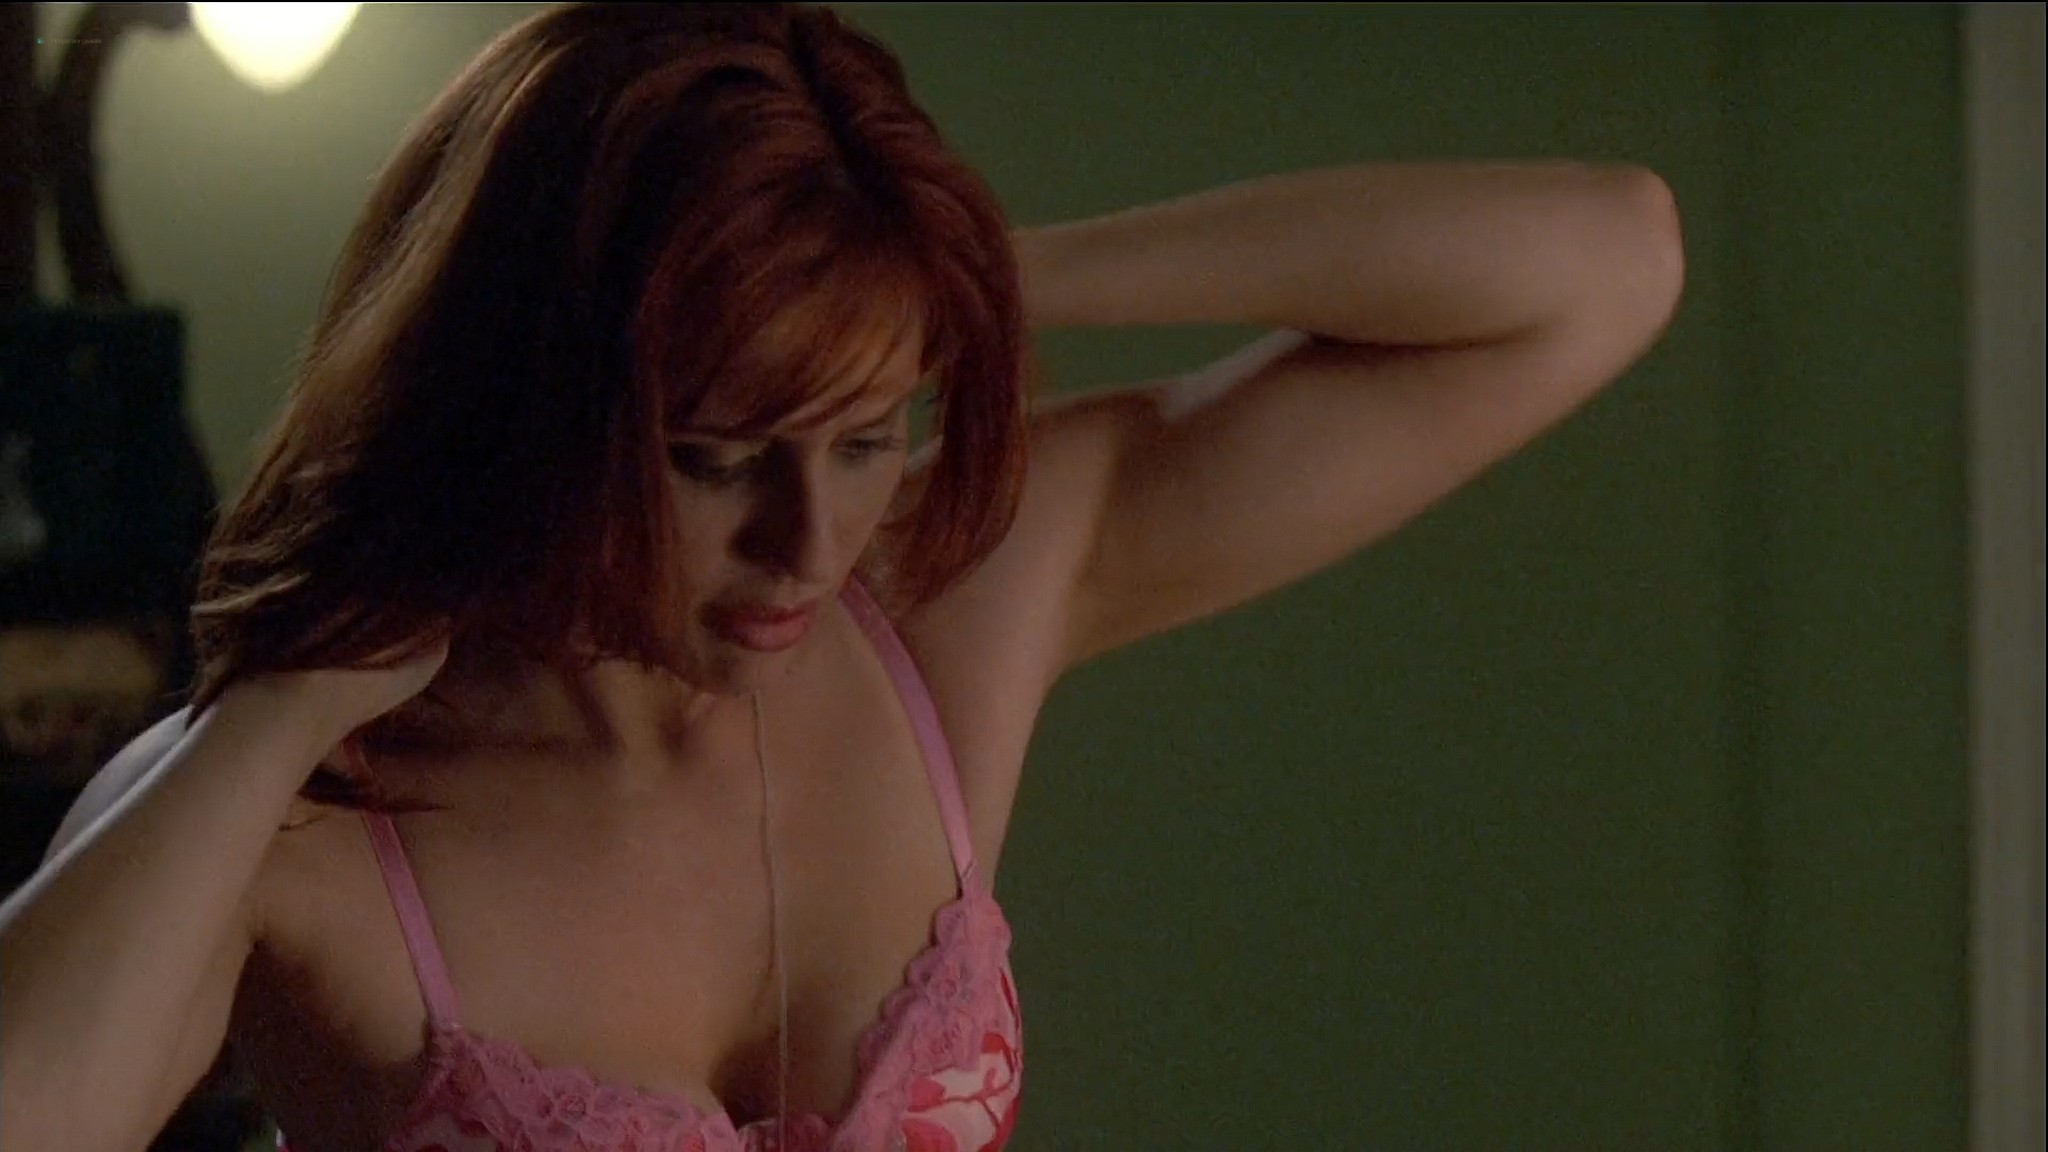 Kristen Miller hot and sex Allison Lange Brooke Burns sexy and some sex too Single White Female 2 2005 1080p Web 12